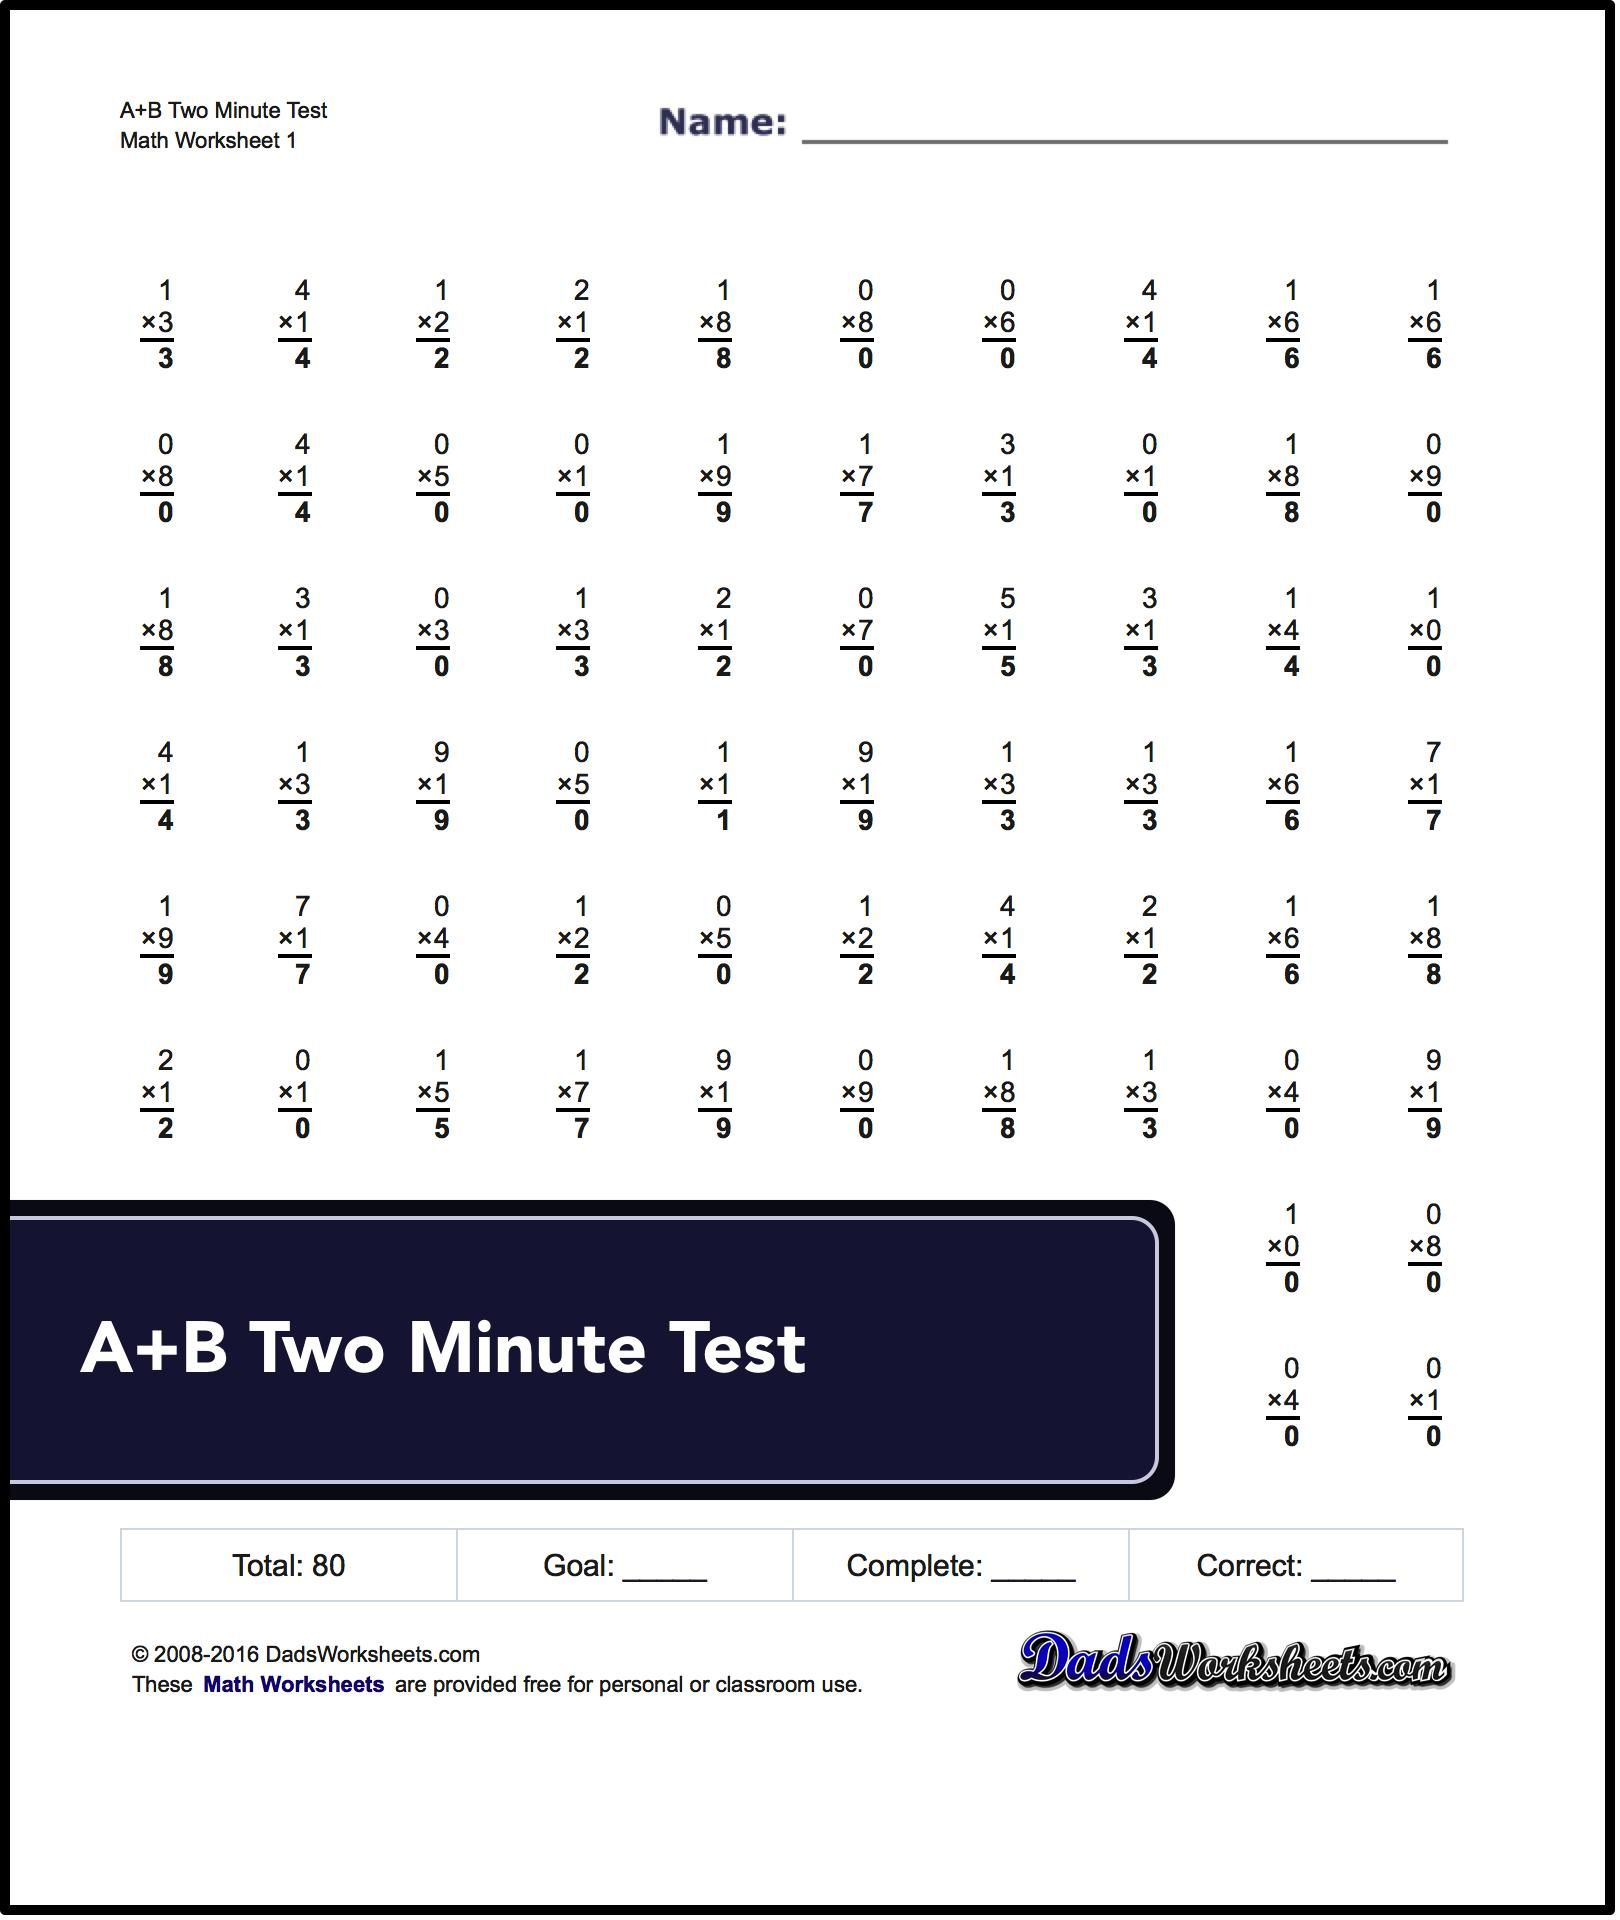 worksheet Minute Math Multiplication Worksheets these two minute multiplication worksheets are just a few of the 80 and 100 problem spaceship mathrocketmathmad timed worksheets